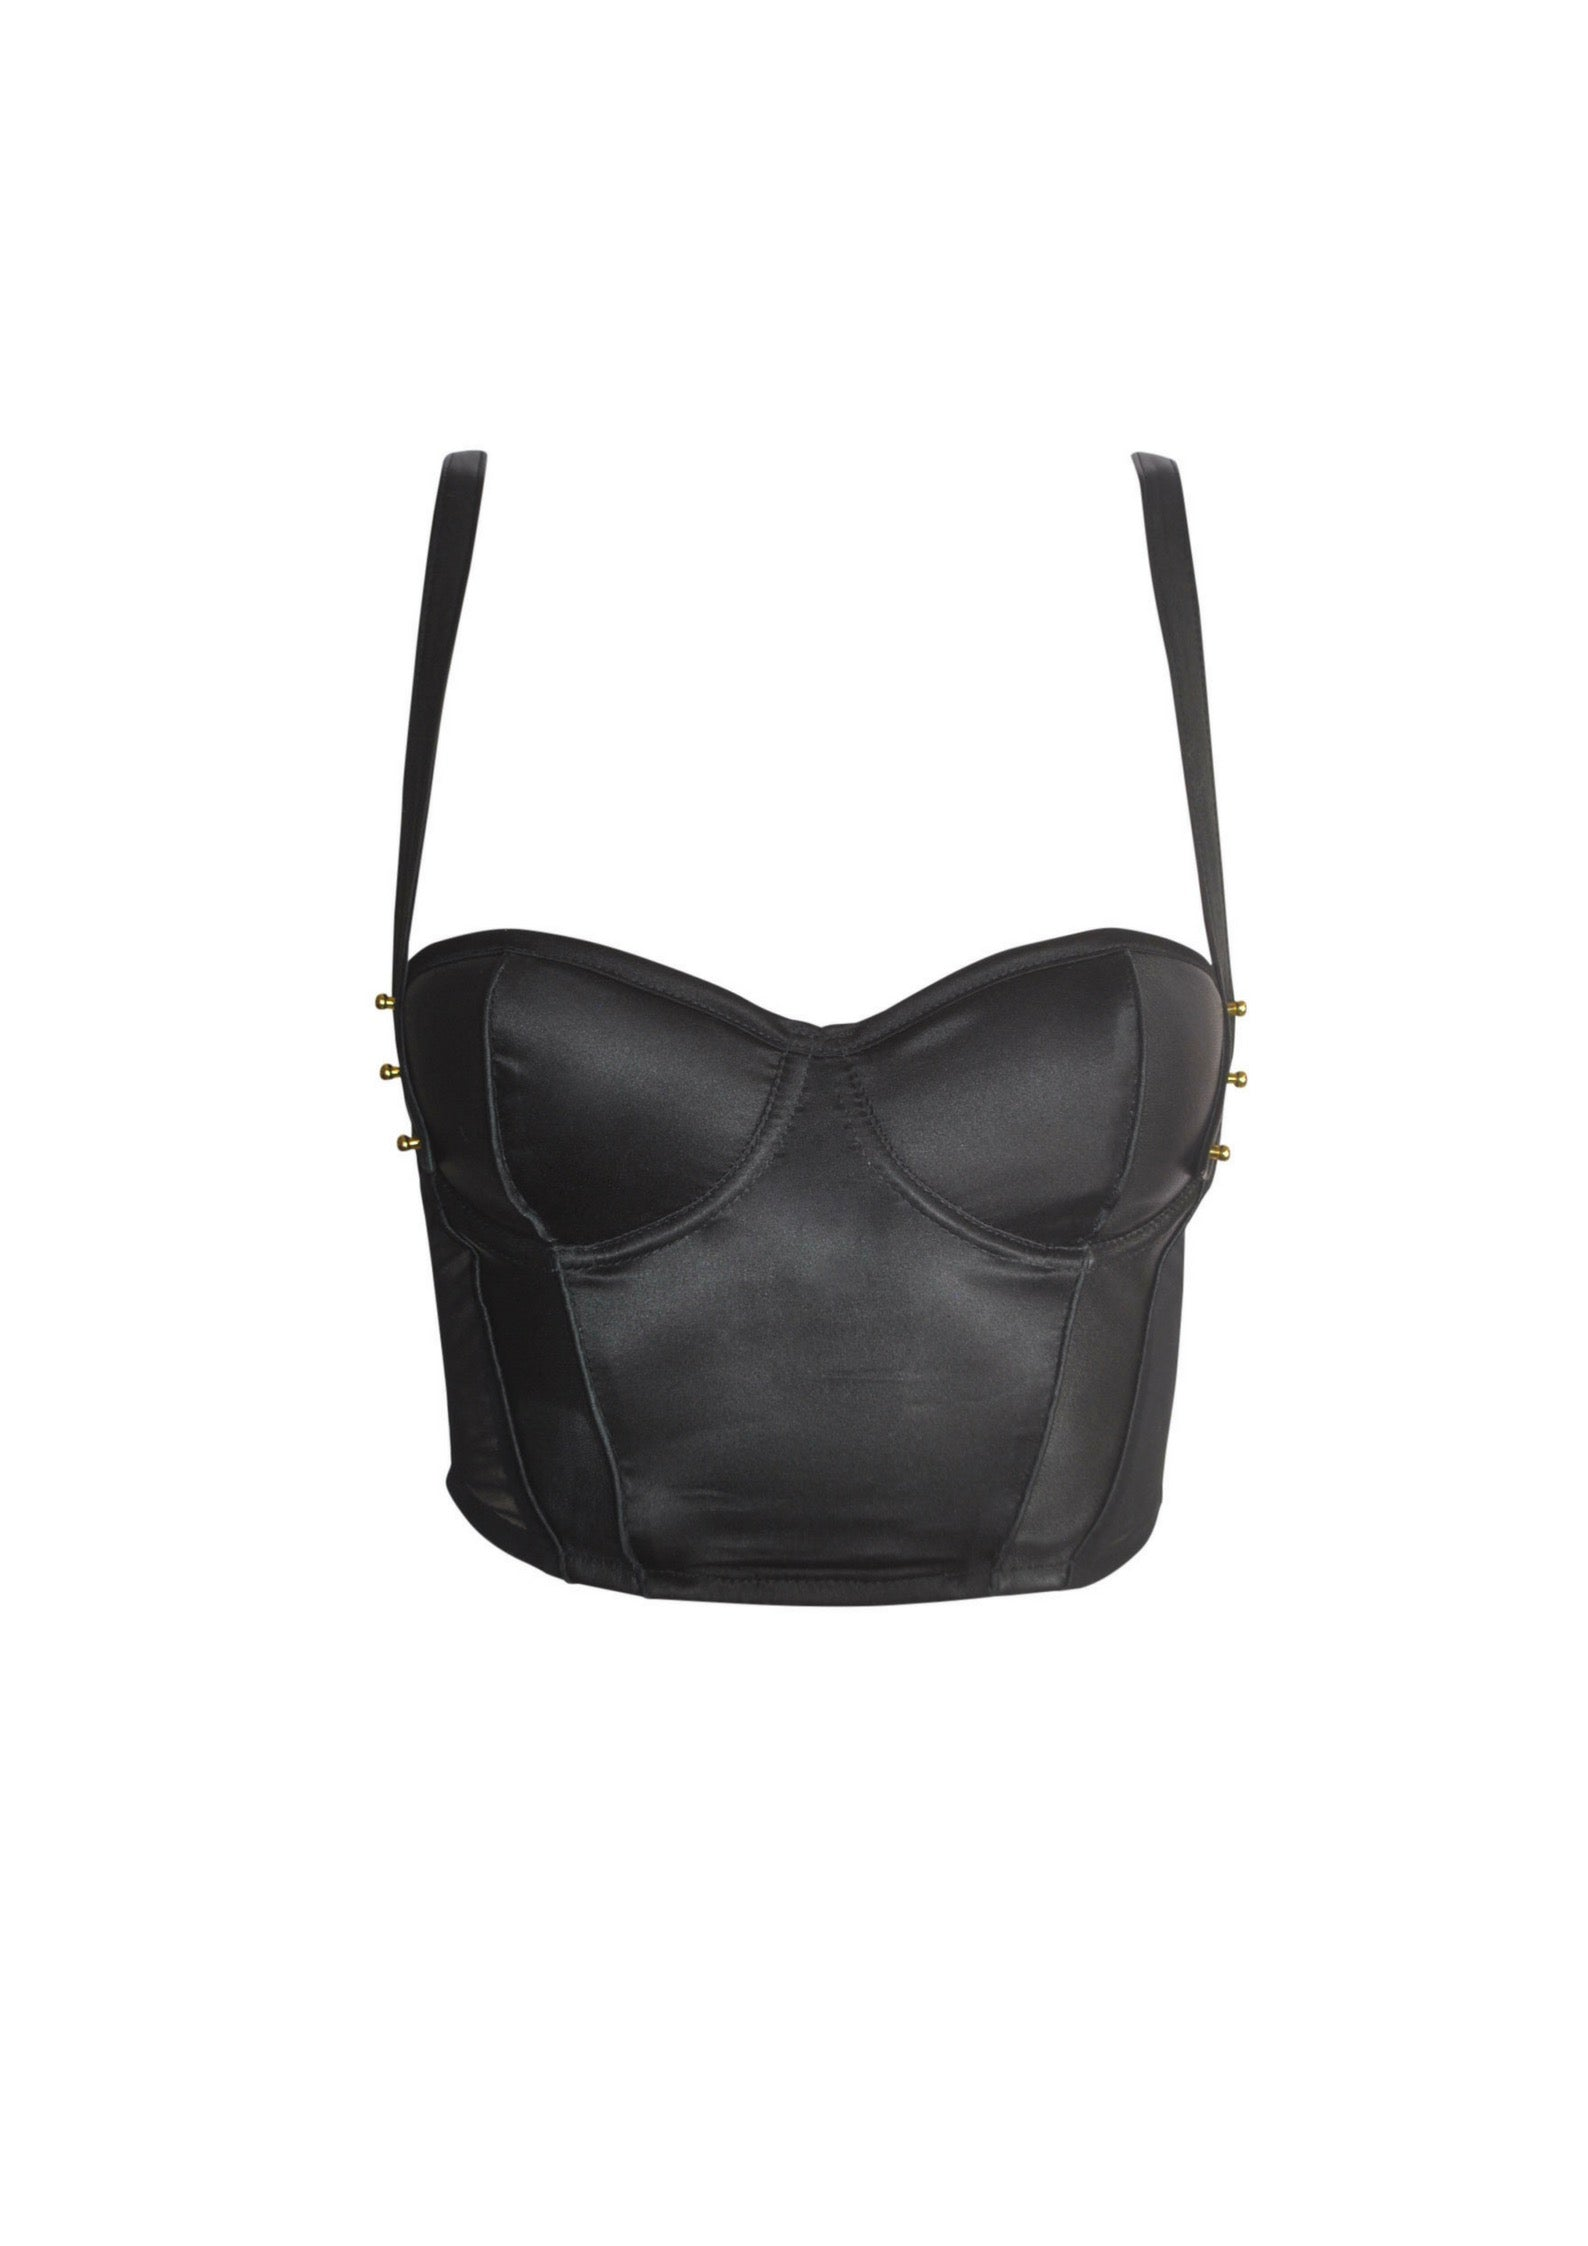 Lola 'n' Leather Bustier - Available to pre-order now